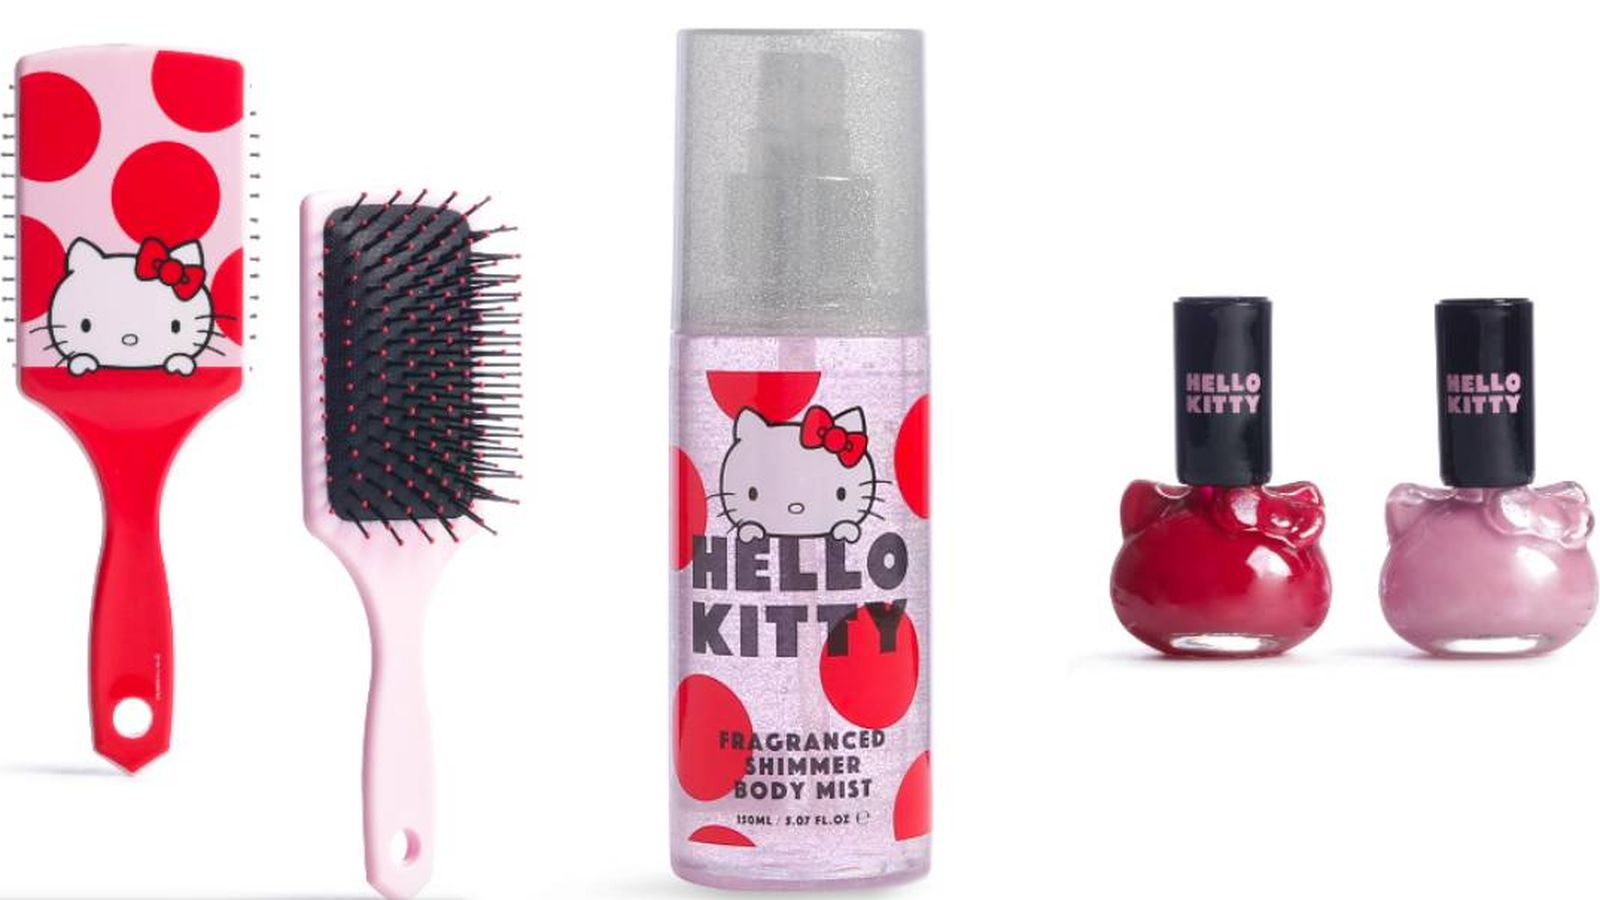 Foto: Colección beauty de Hello Kitty. (Cortesía)